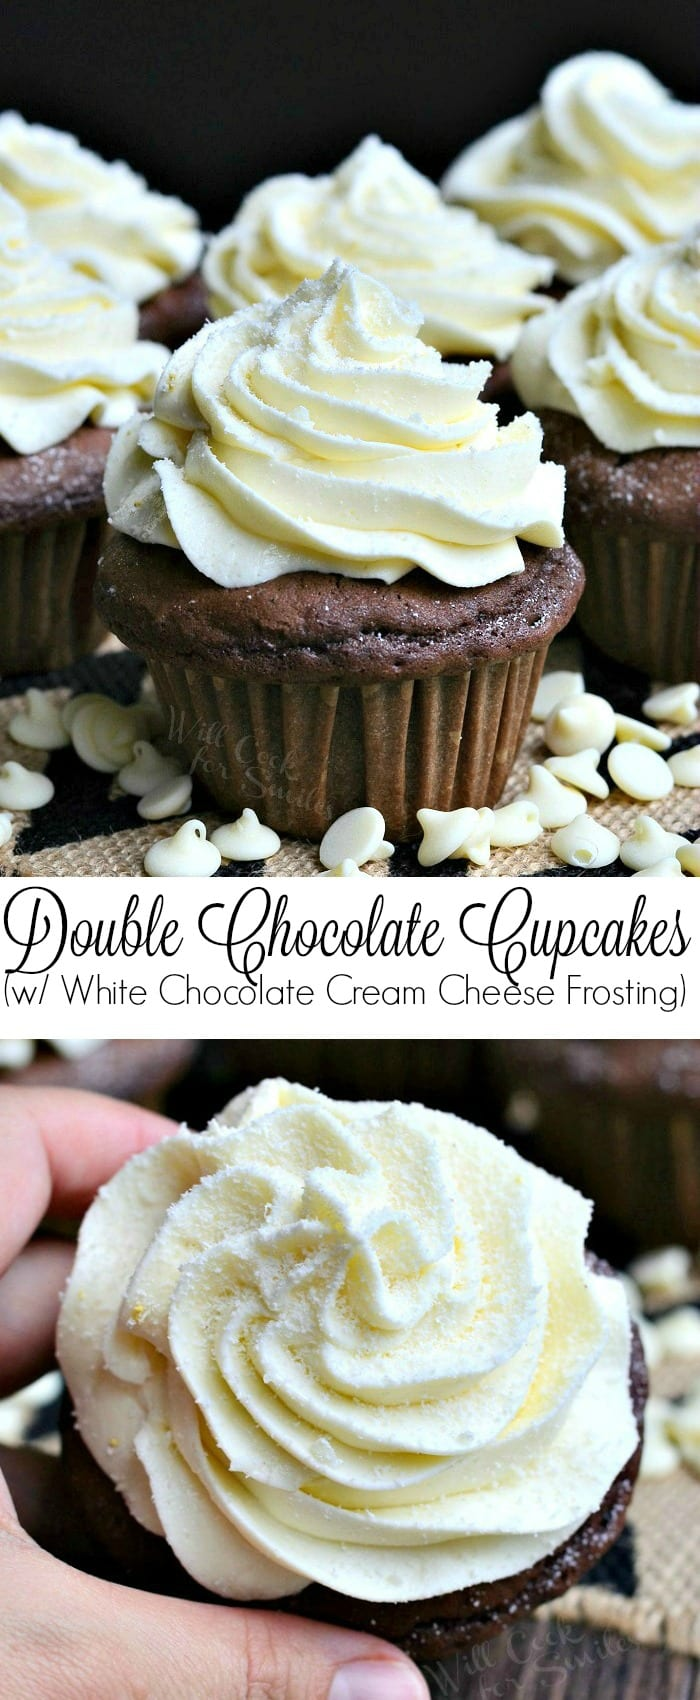 Double Chocolate Cupcakes (with White Chocolate Cream Cheese Frosting) | from willcookforsmiles.com #cupcake #cake #dessert